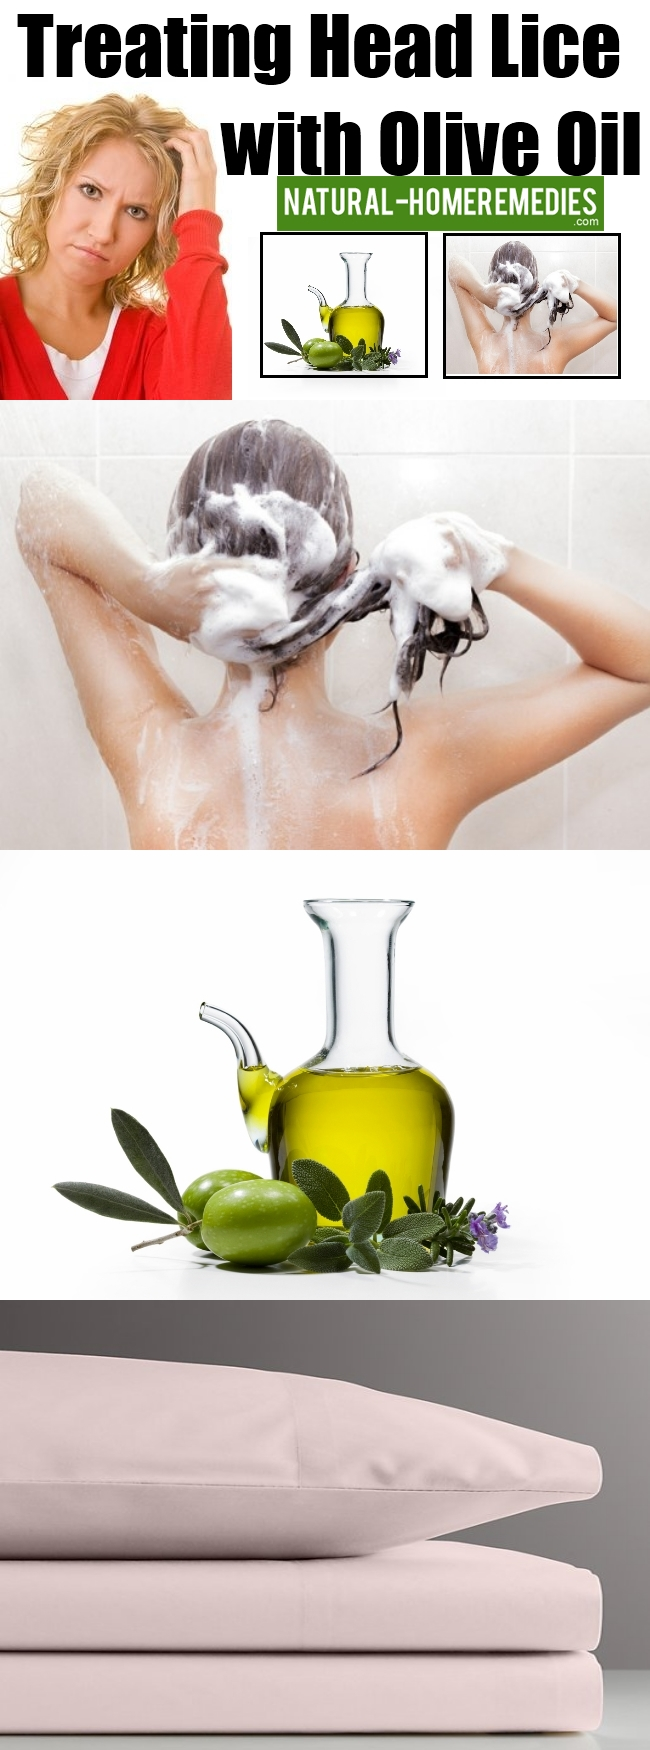 Treating Head Lice with Olive Oil